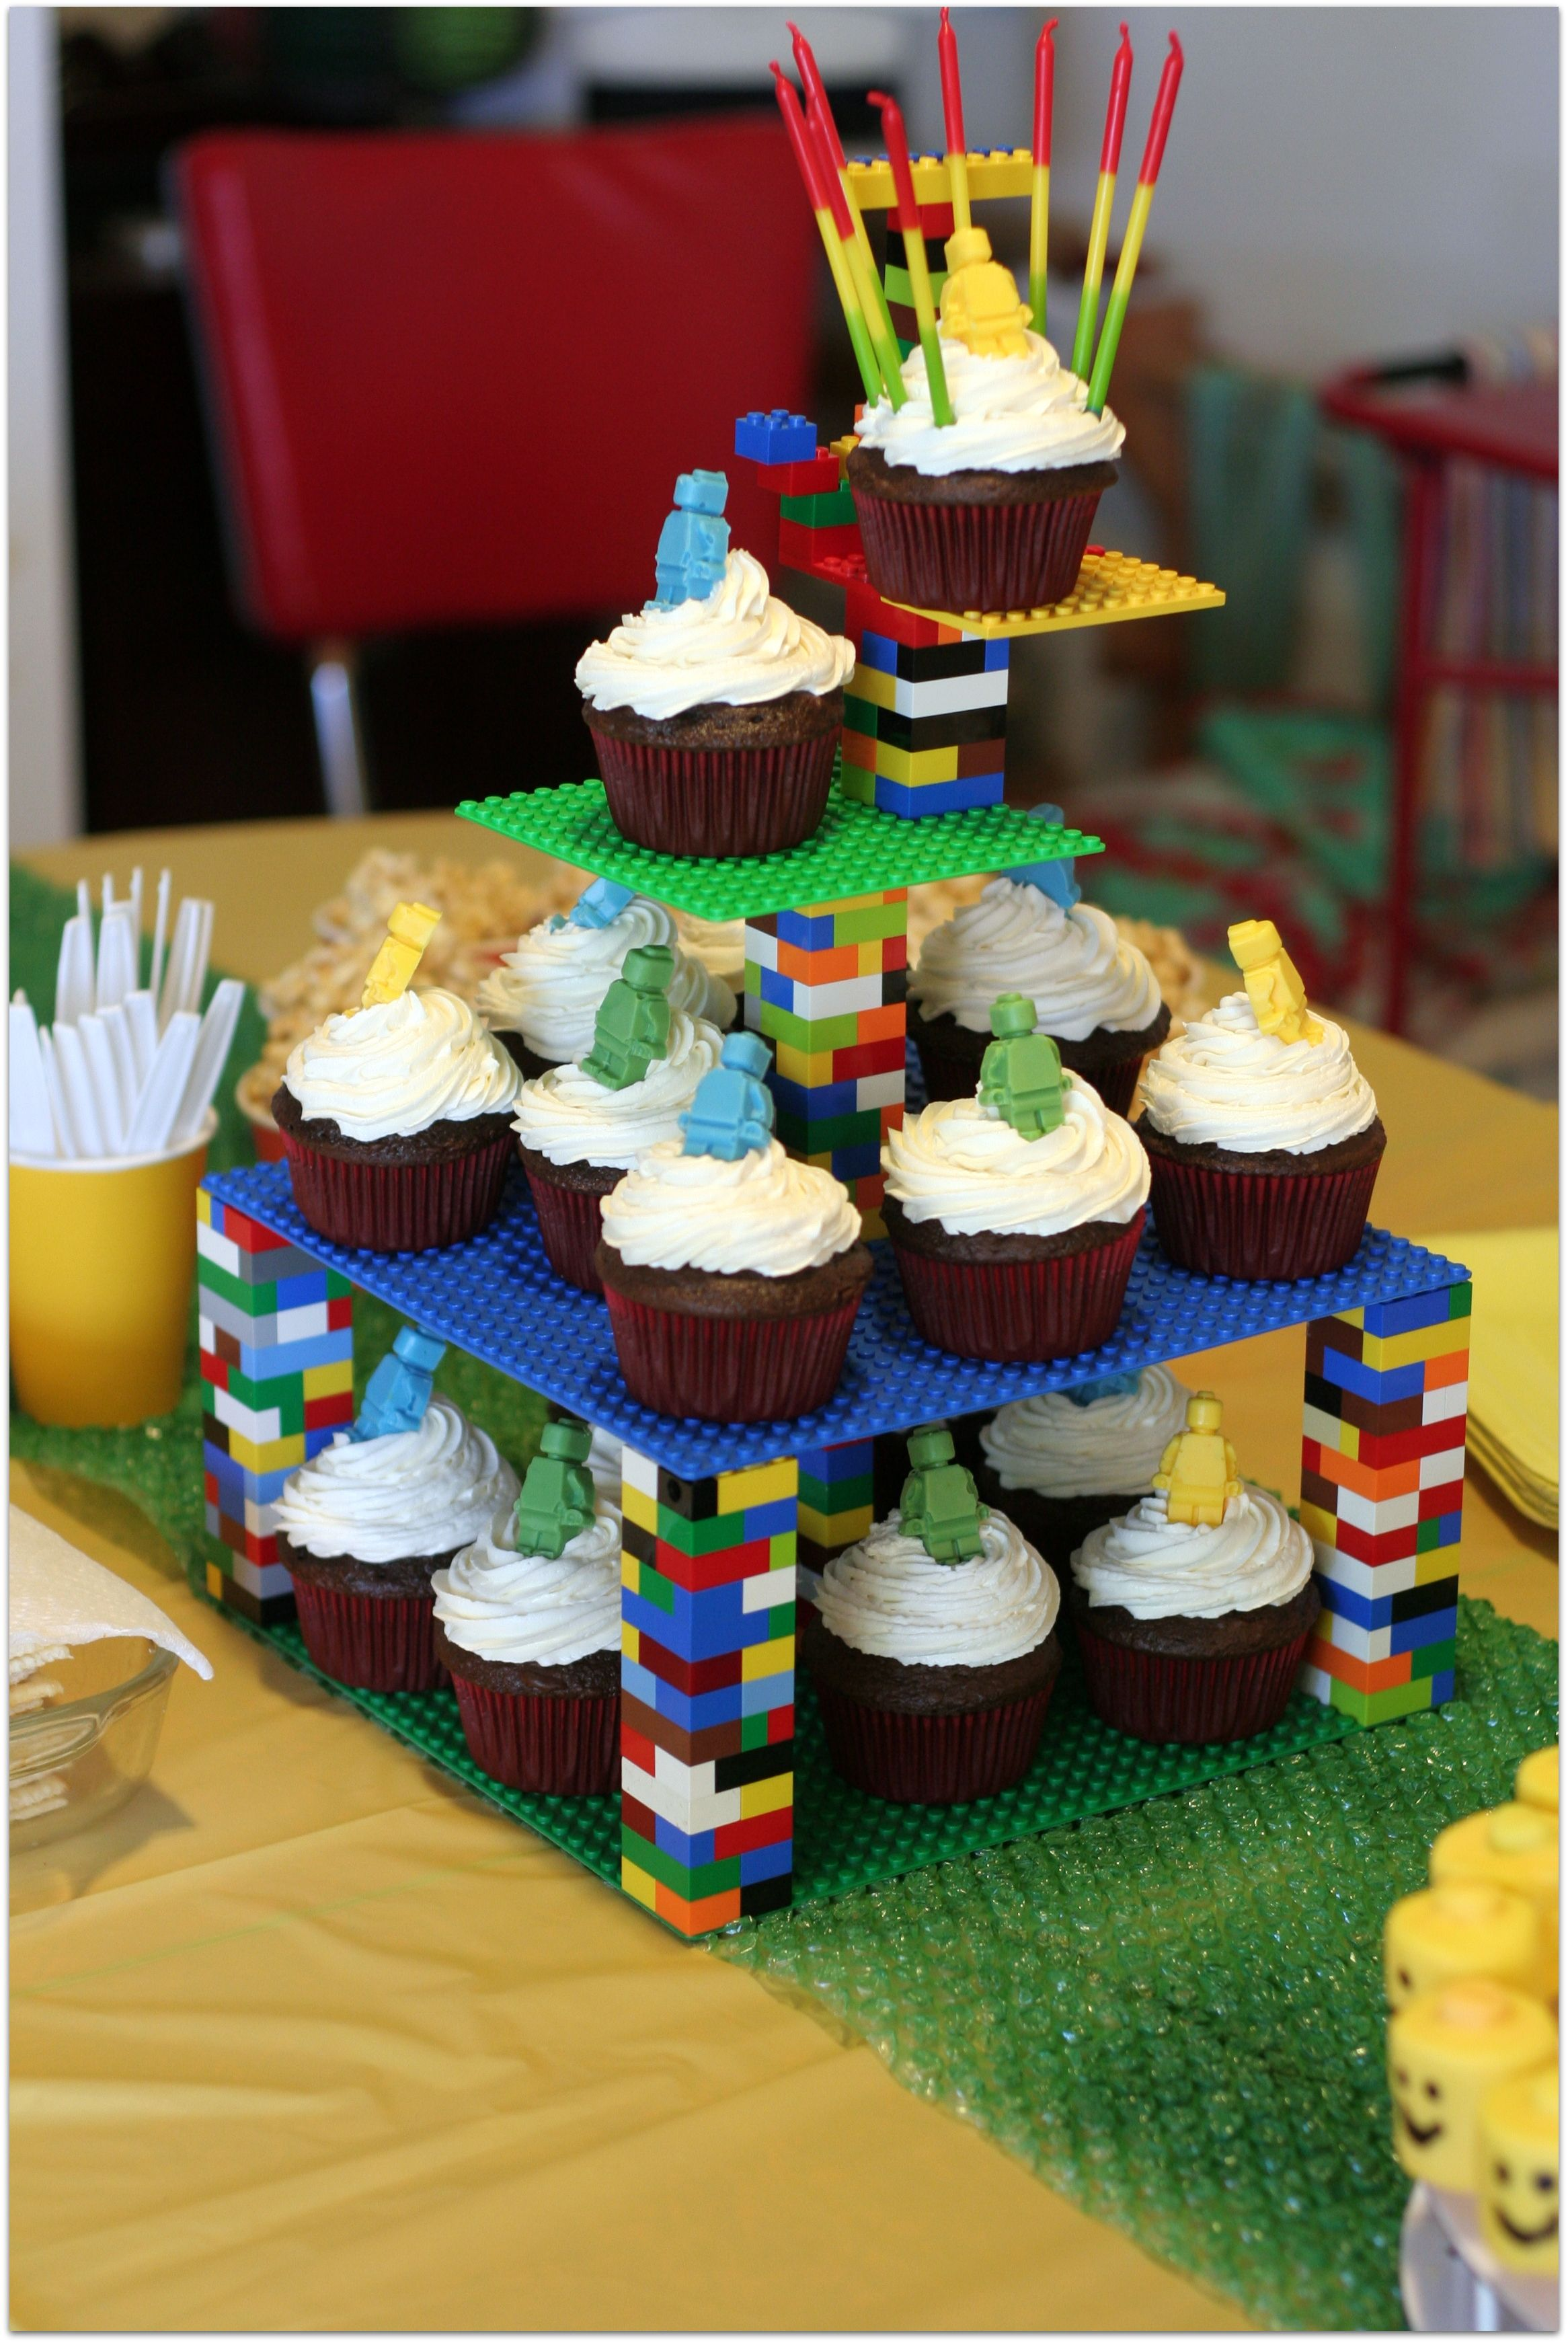 Lego birthday party cupcake tower made from legos kinder pinterest geburtstag lego - Ideen zur geburtstagsfeier ...